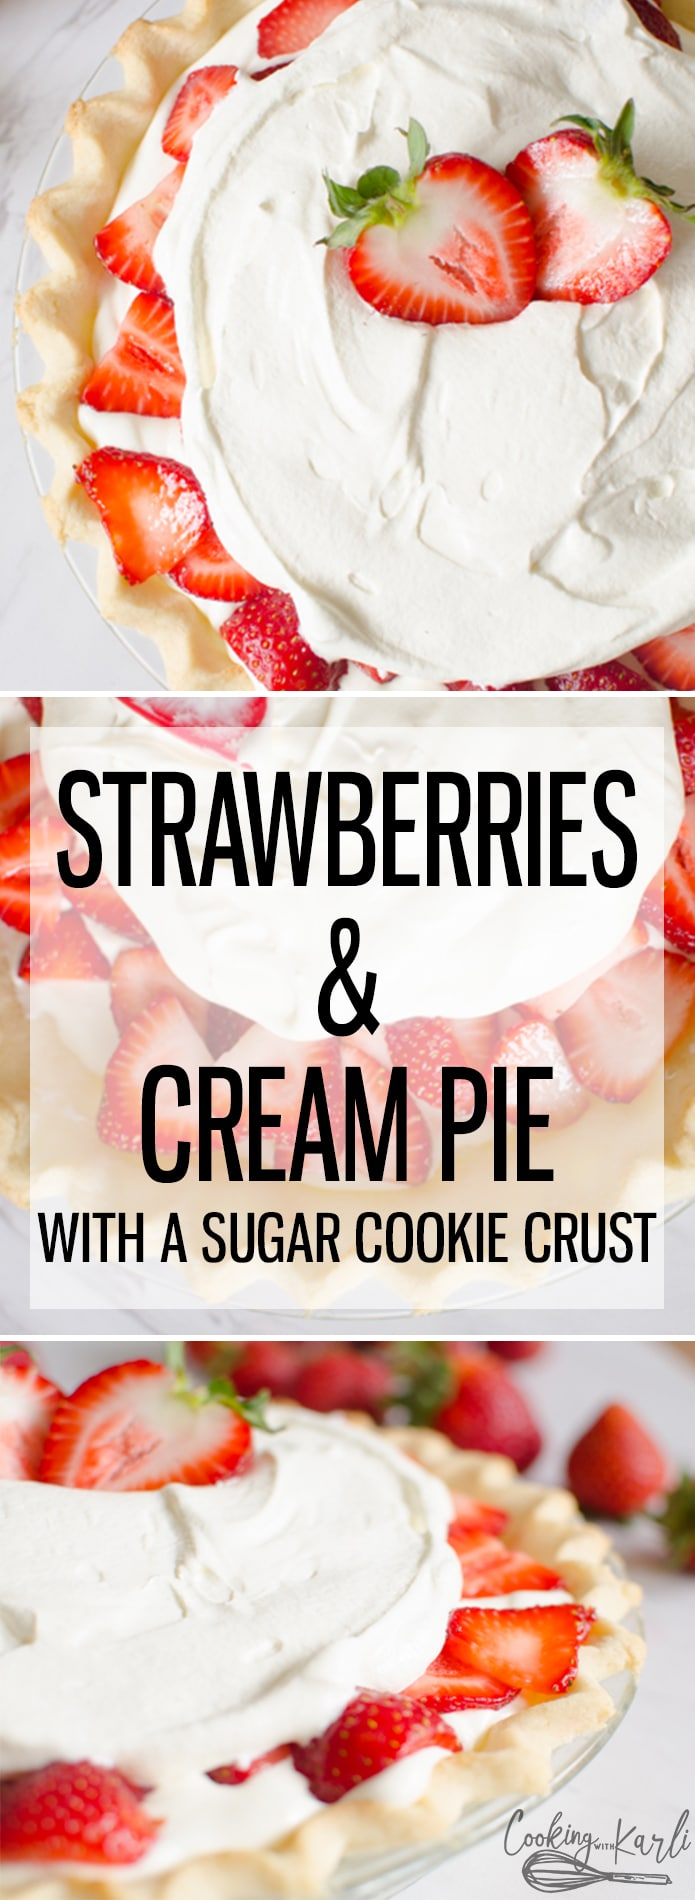 Strawberries and Cream Pie is fresh, simple and creamy. Made with fresh strawberries and creamy vanilla filling all on top of a chewy, sugar cookie crust. This Pie is quick, easy and perfect for a summer night! |Cooking with Karli| #freshpie #strawberrypie #strawberriesandcream #summerdessert #summerpie #dessert